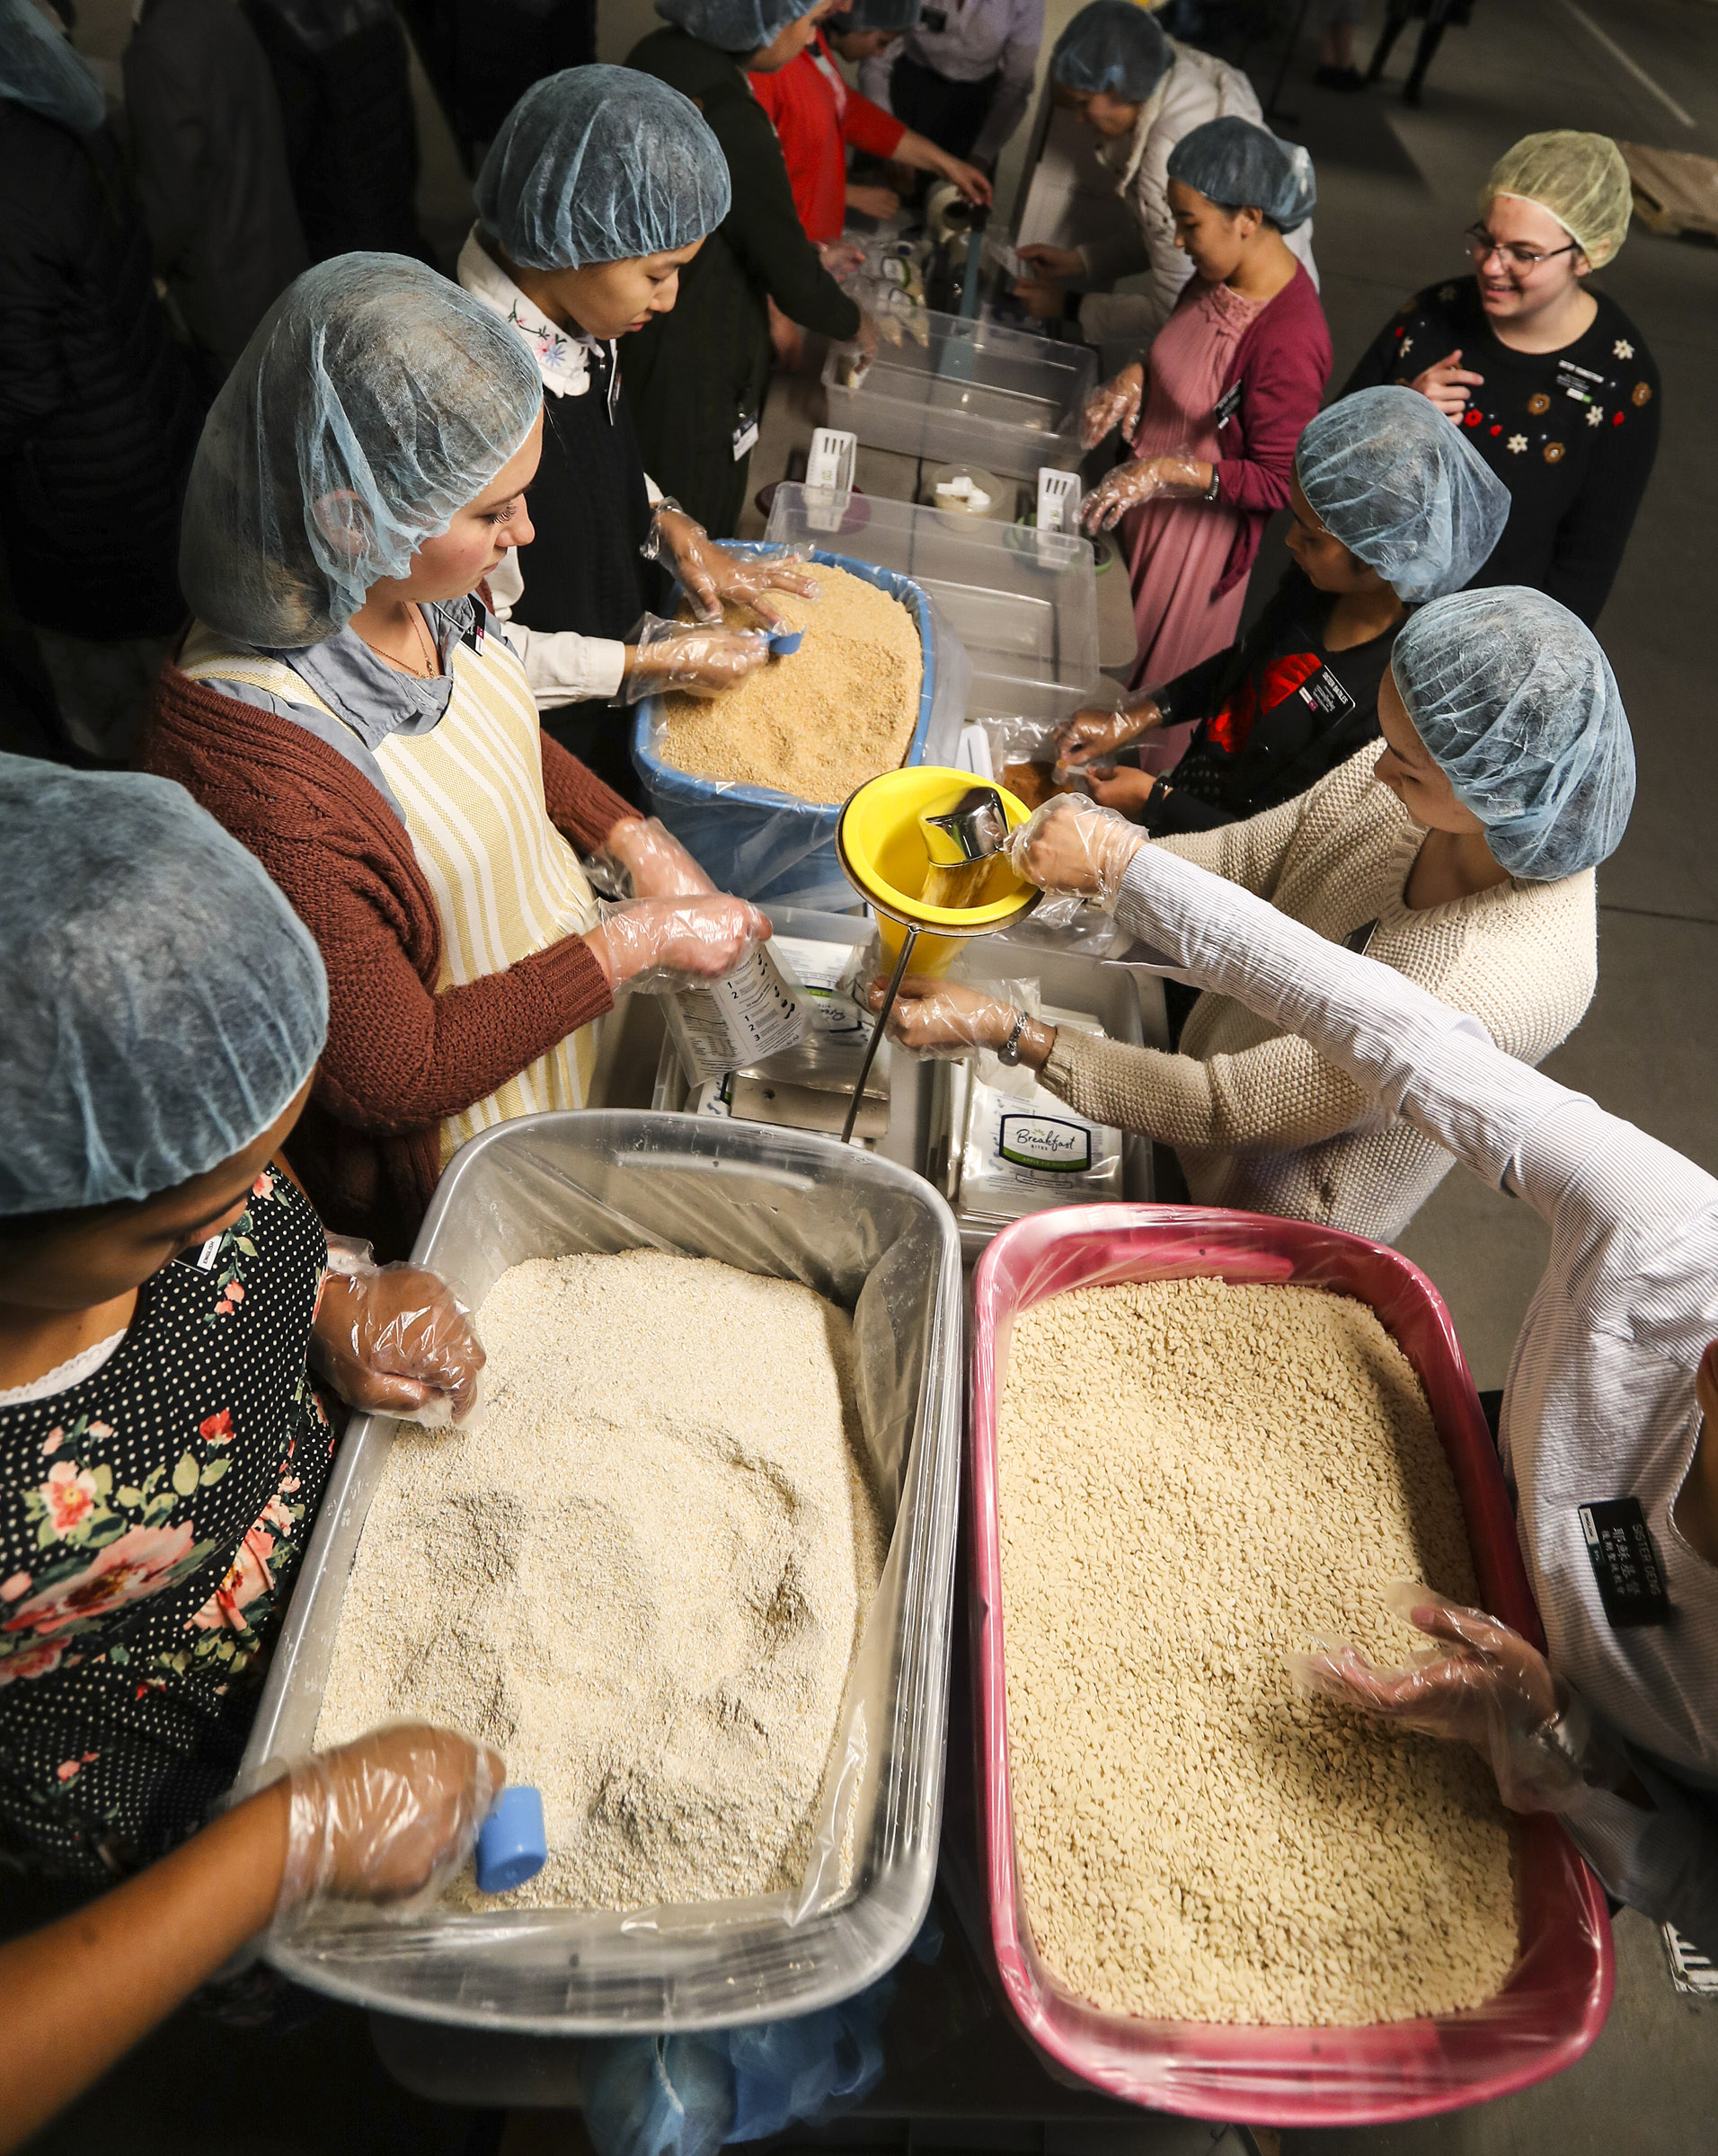 """Missionaries at the Missionary Training Center in Provo work to fill bags of """"Apple Pie Oats"""" as they participate in an annual service project with Feeding Children Everywhere to address the issue of domestic hunger. Working in a covered parking garage at the MTC, the group assembled more than 350,000 meals for the Utah Food Bank on Thursday, Nov. 22, 2018."""